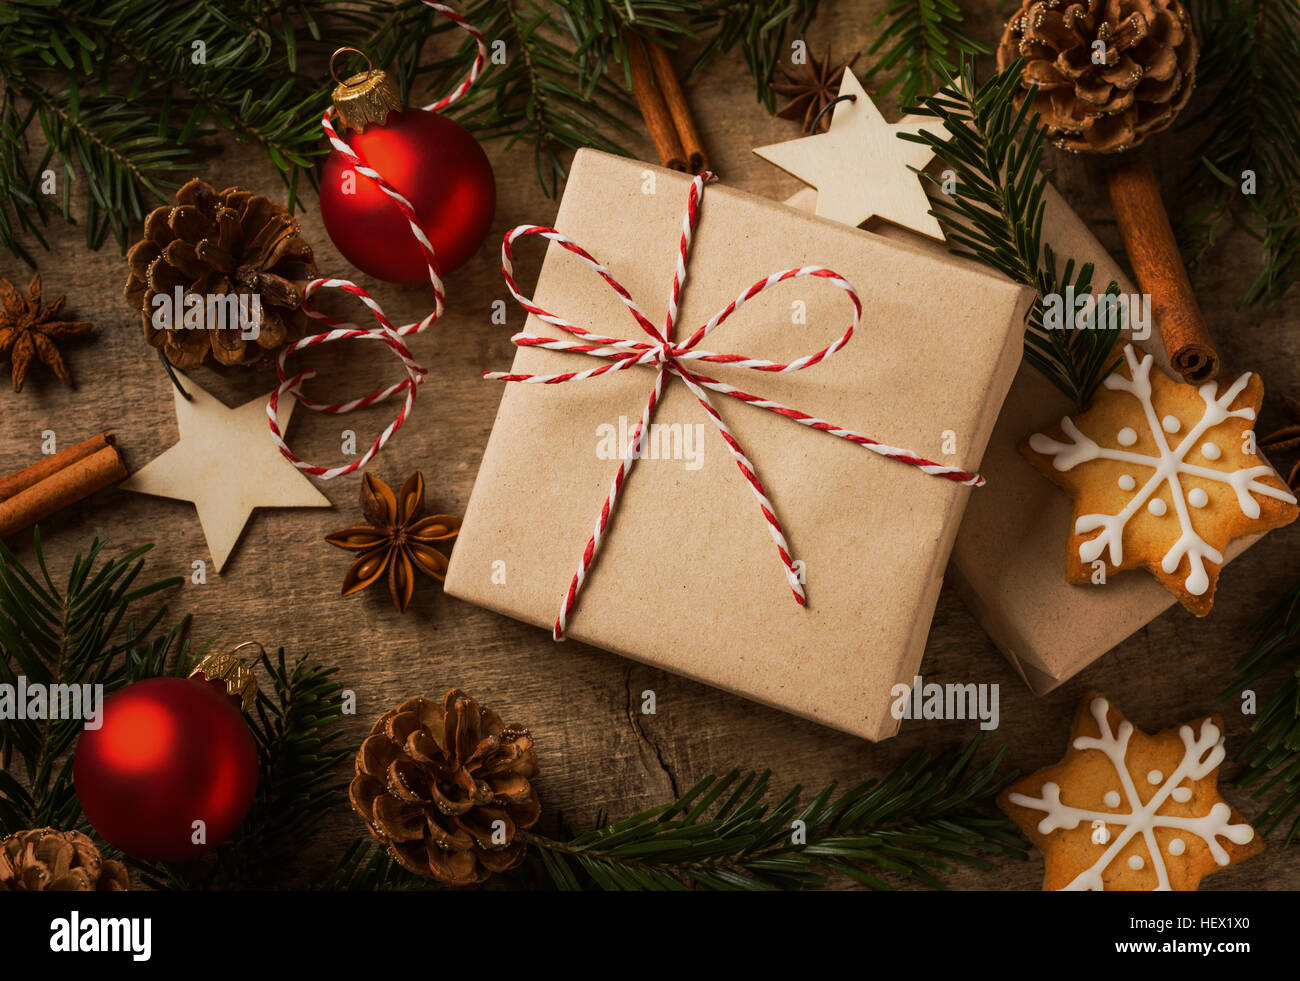 Christmas present wrapped in kraft paper with natural decoration - Stock Image